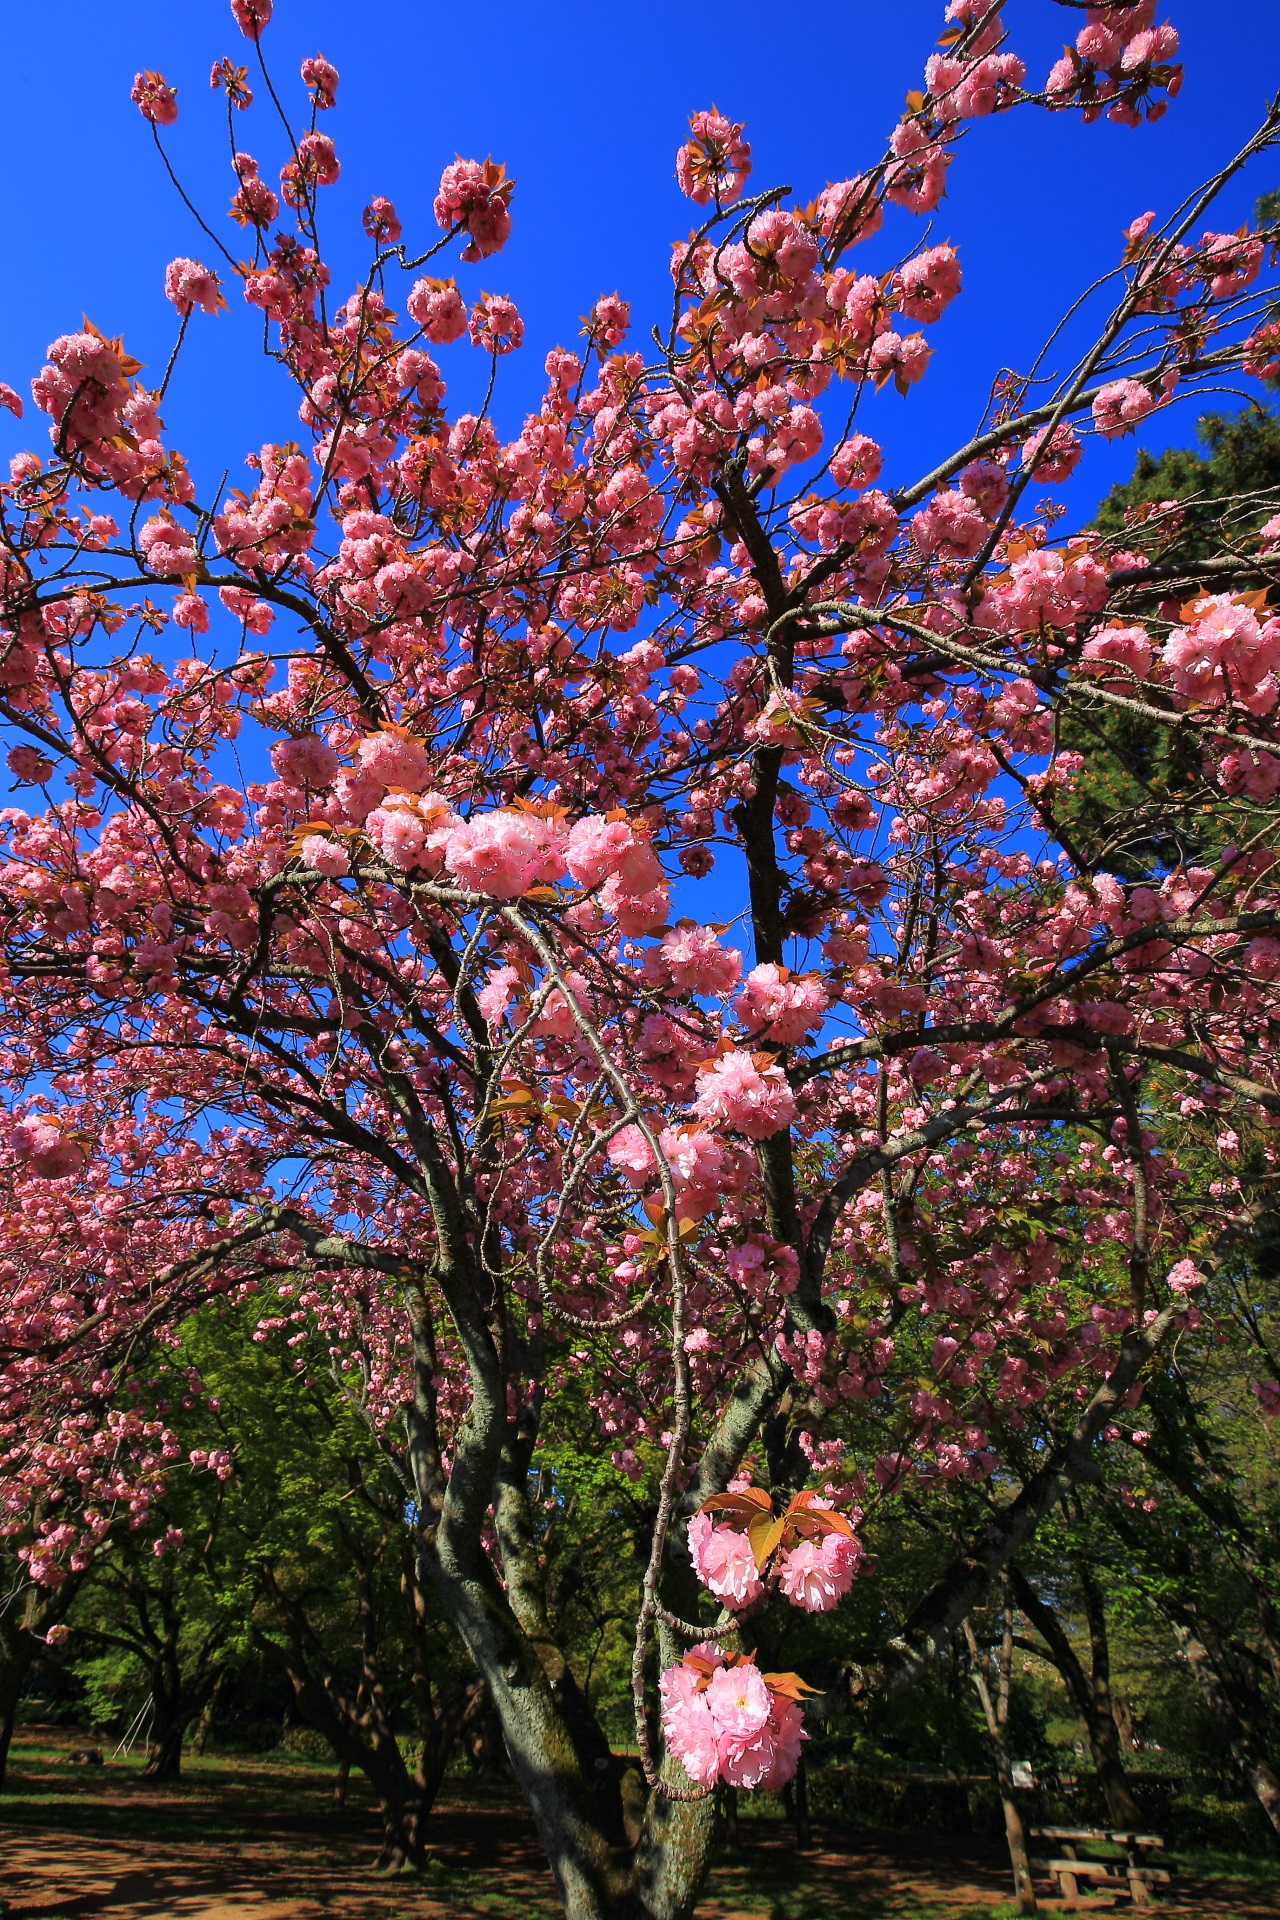 cherryblossoms in Kyoto gyoen,Japan